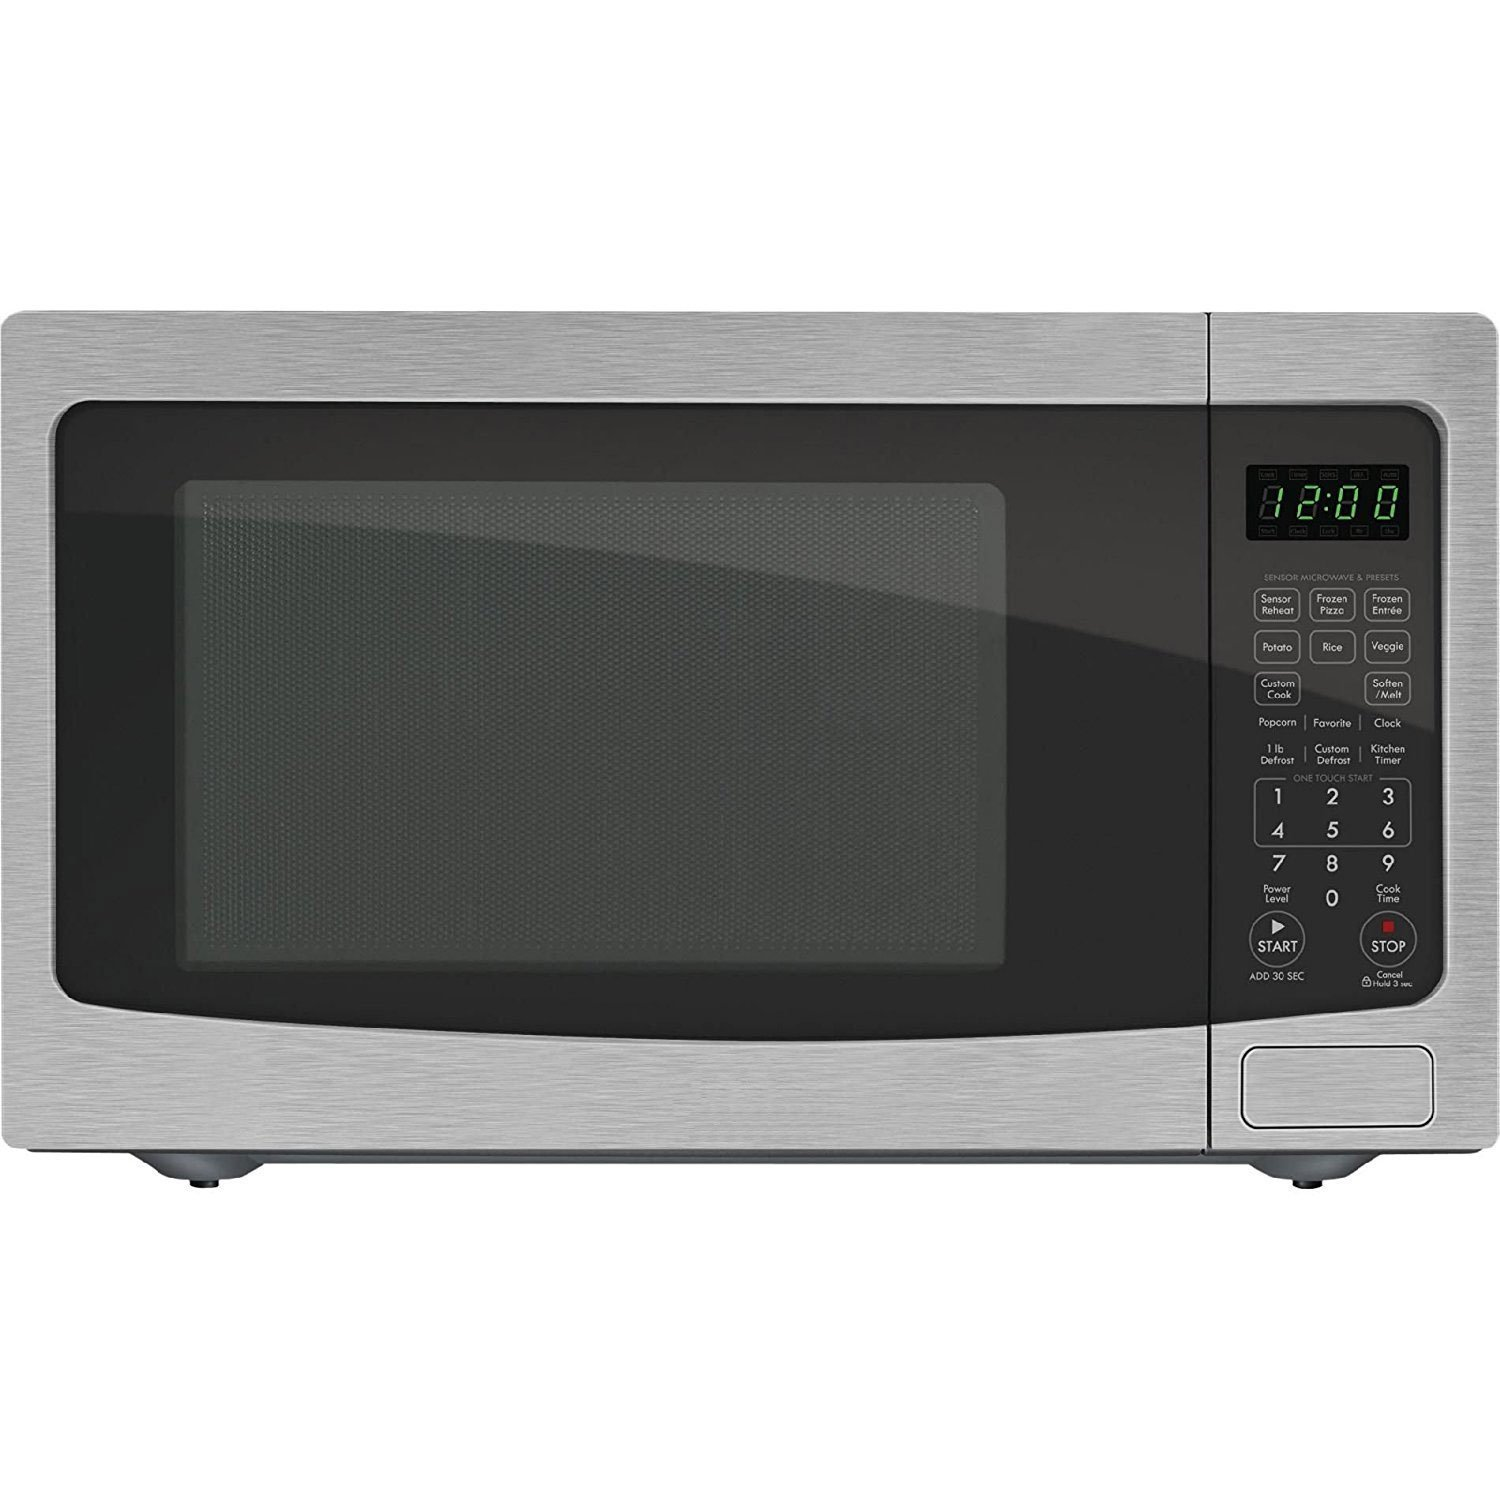 Chef Star CS72123 1.2 cu. ft. 1100-watts Countertop Microwave - Stainless Steel (Certified Refurbished)